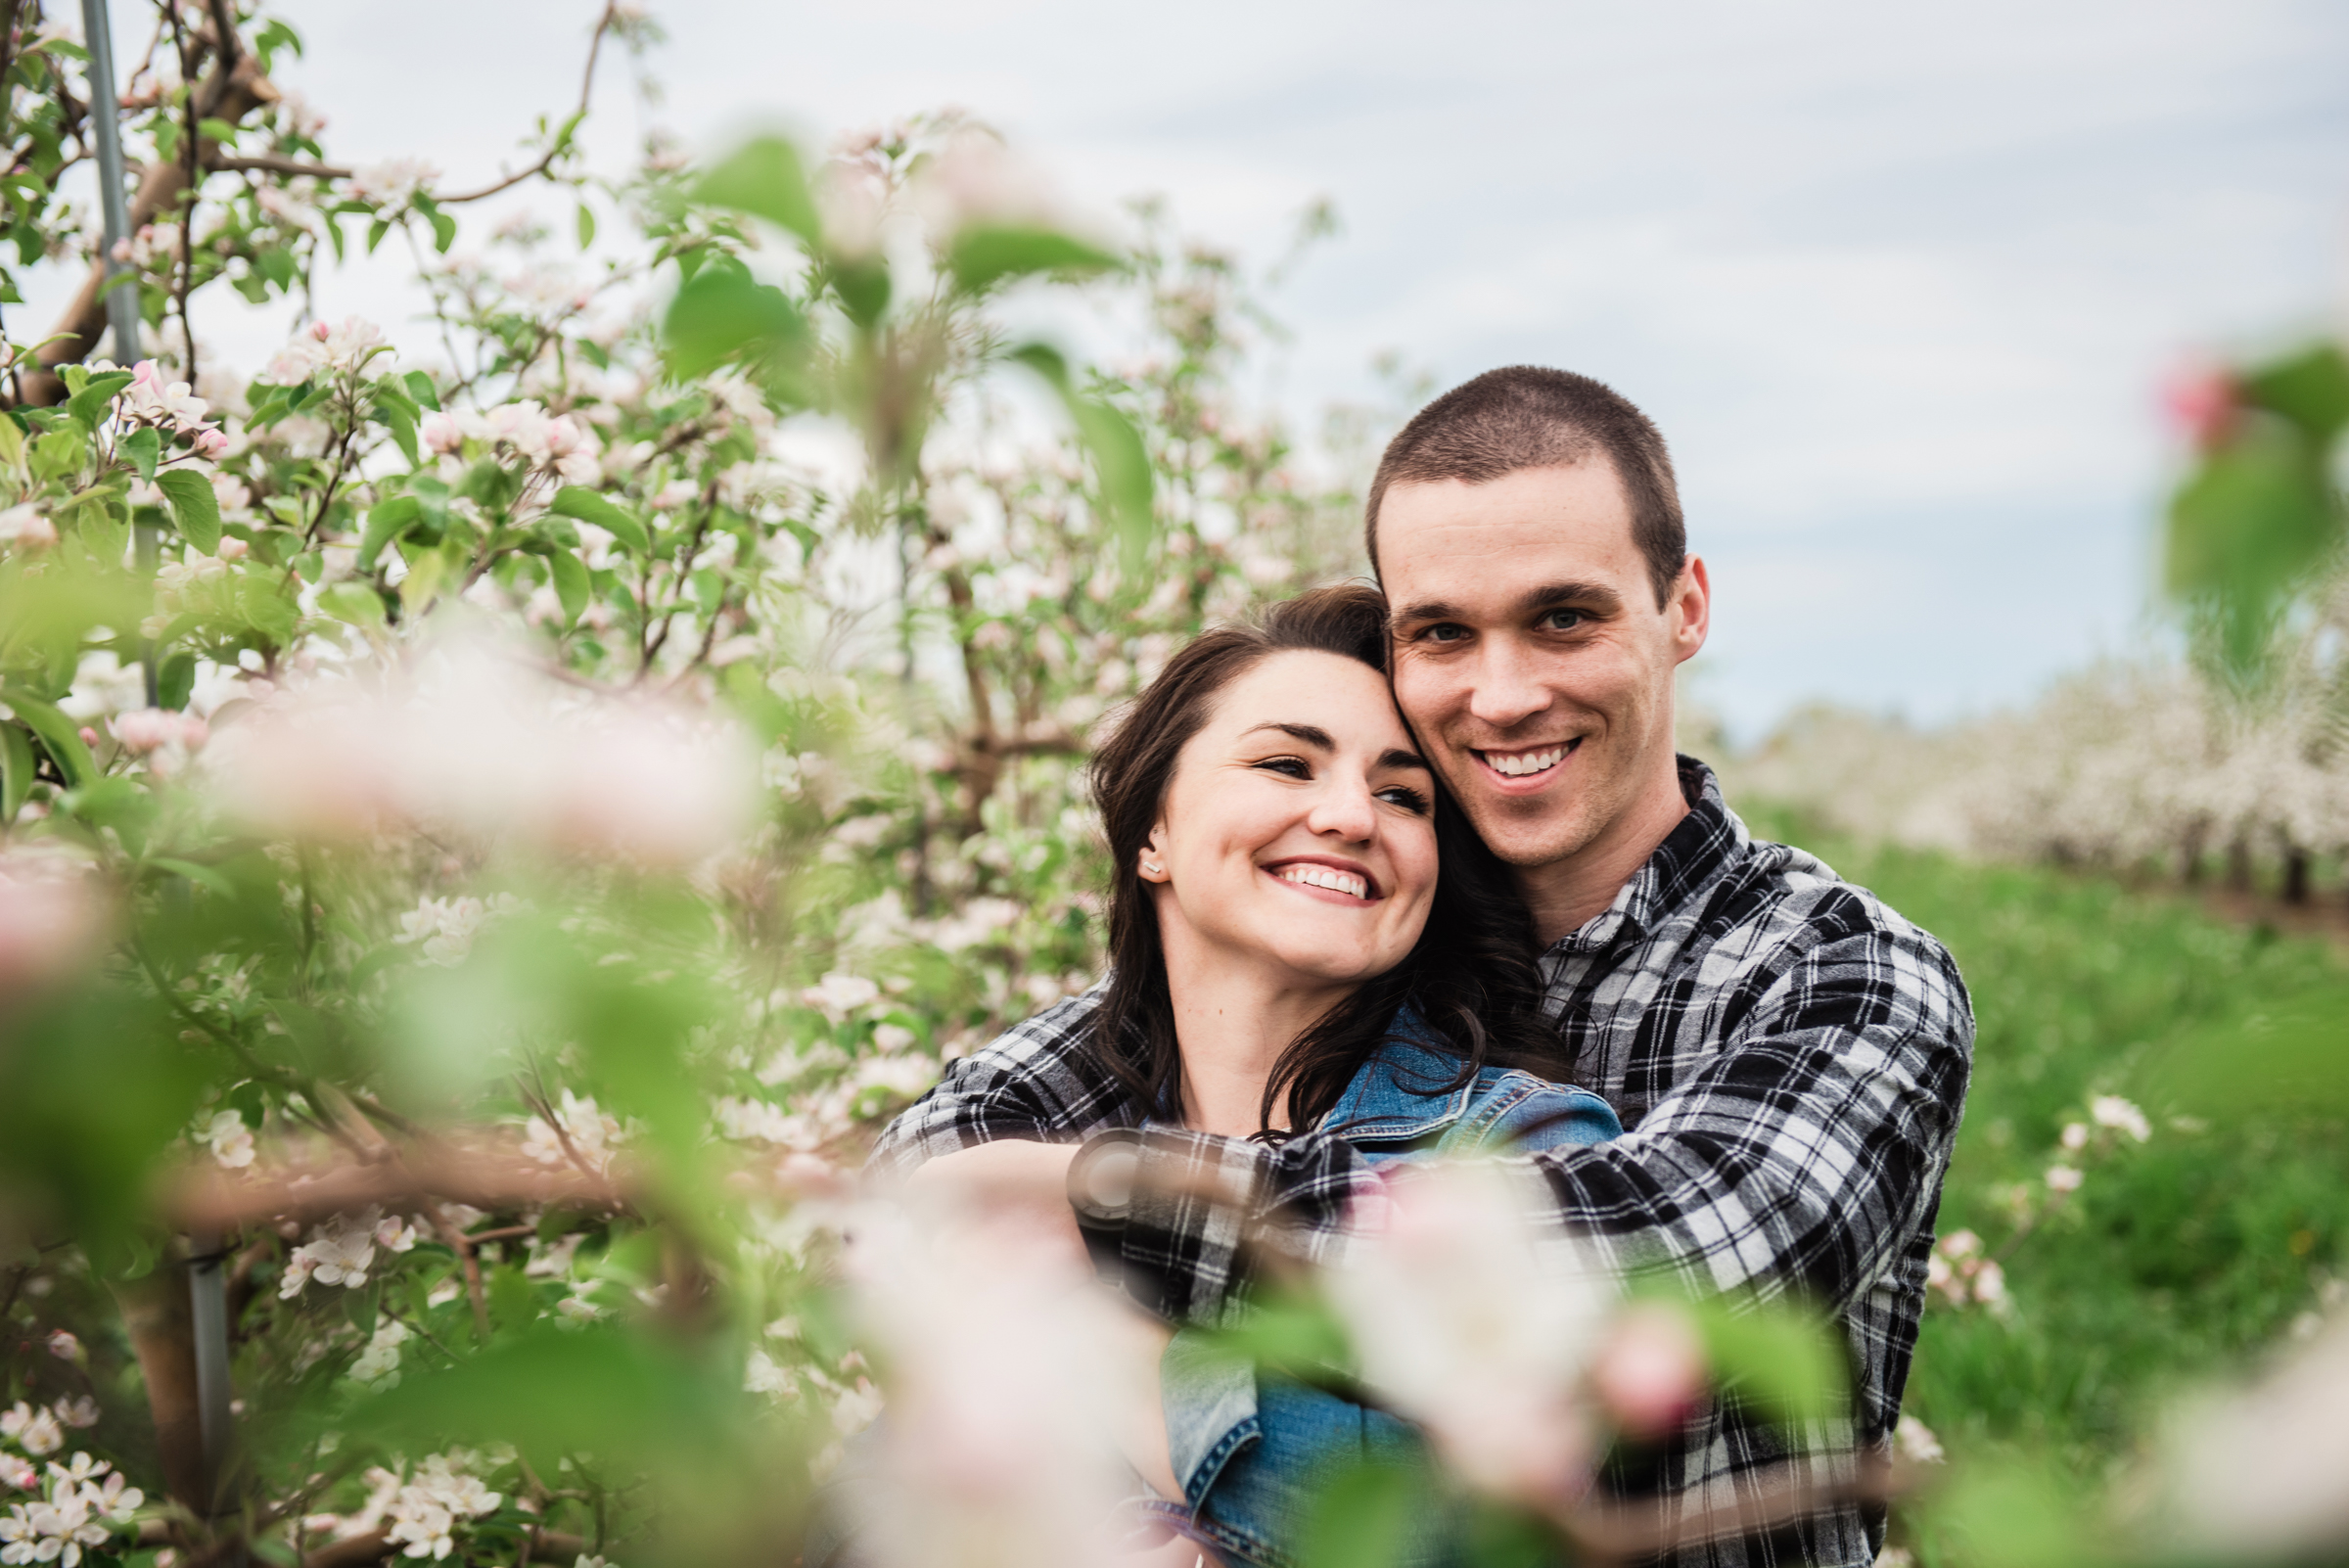 Fox_Farm_Rochester_Couples_Session_JILL_STUDIO_Rochester_NY_Photographer_DSC_7610.jpg